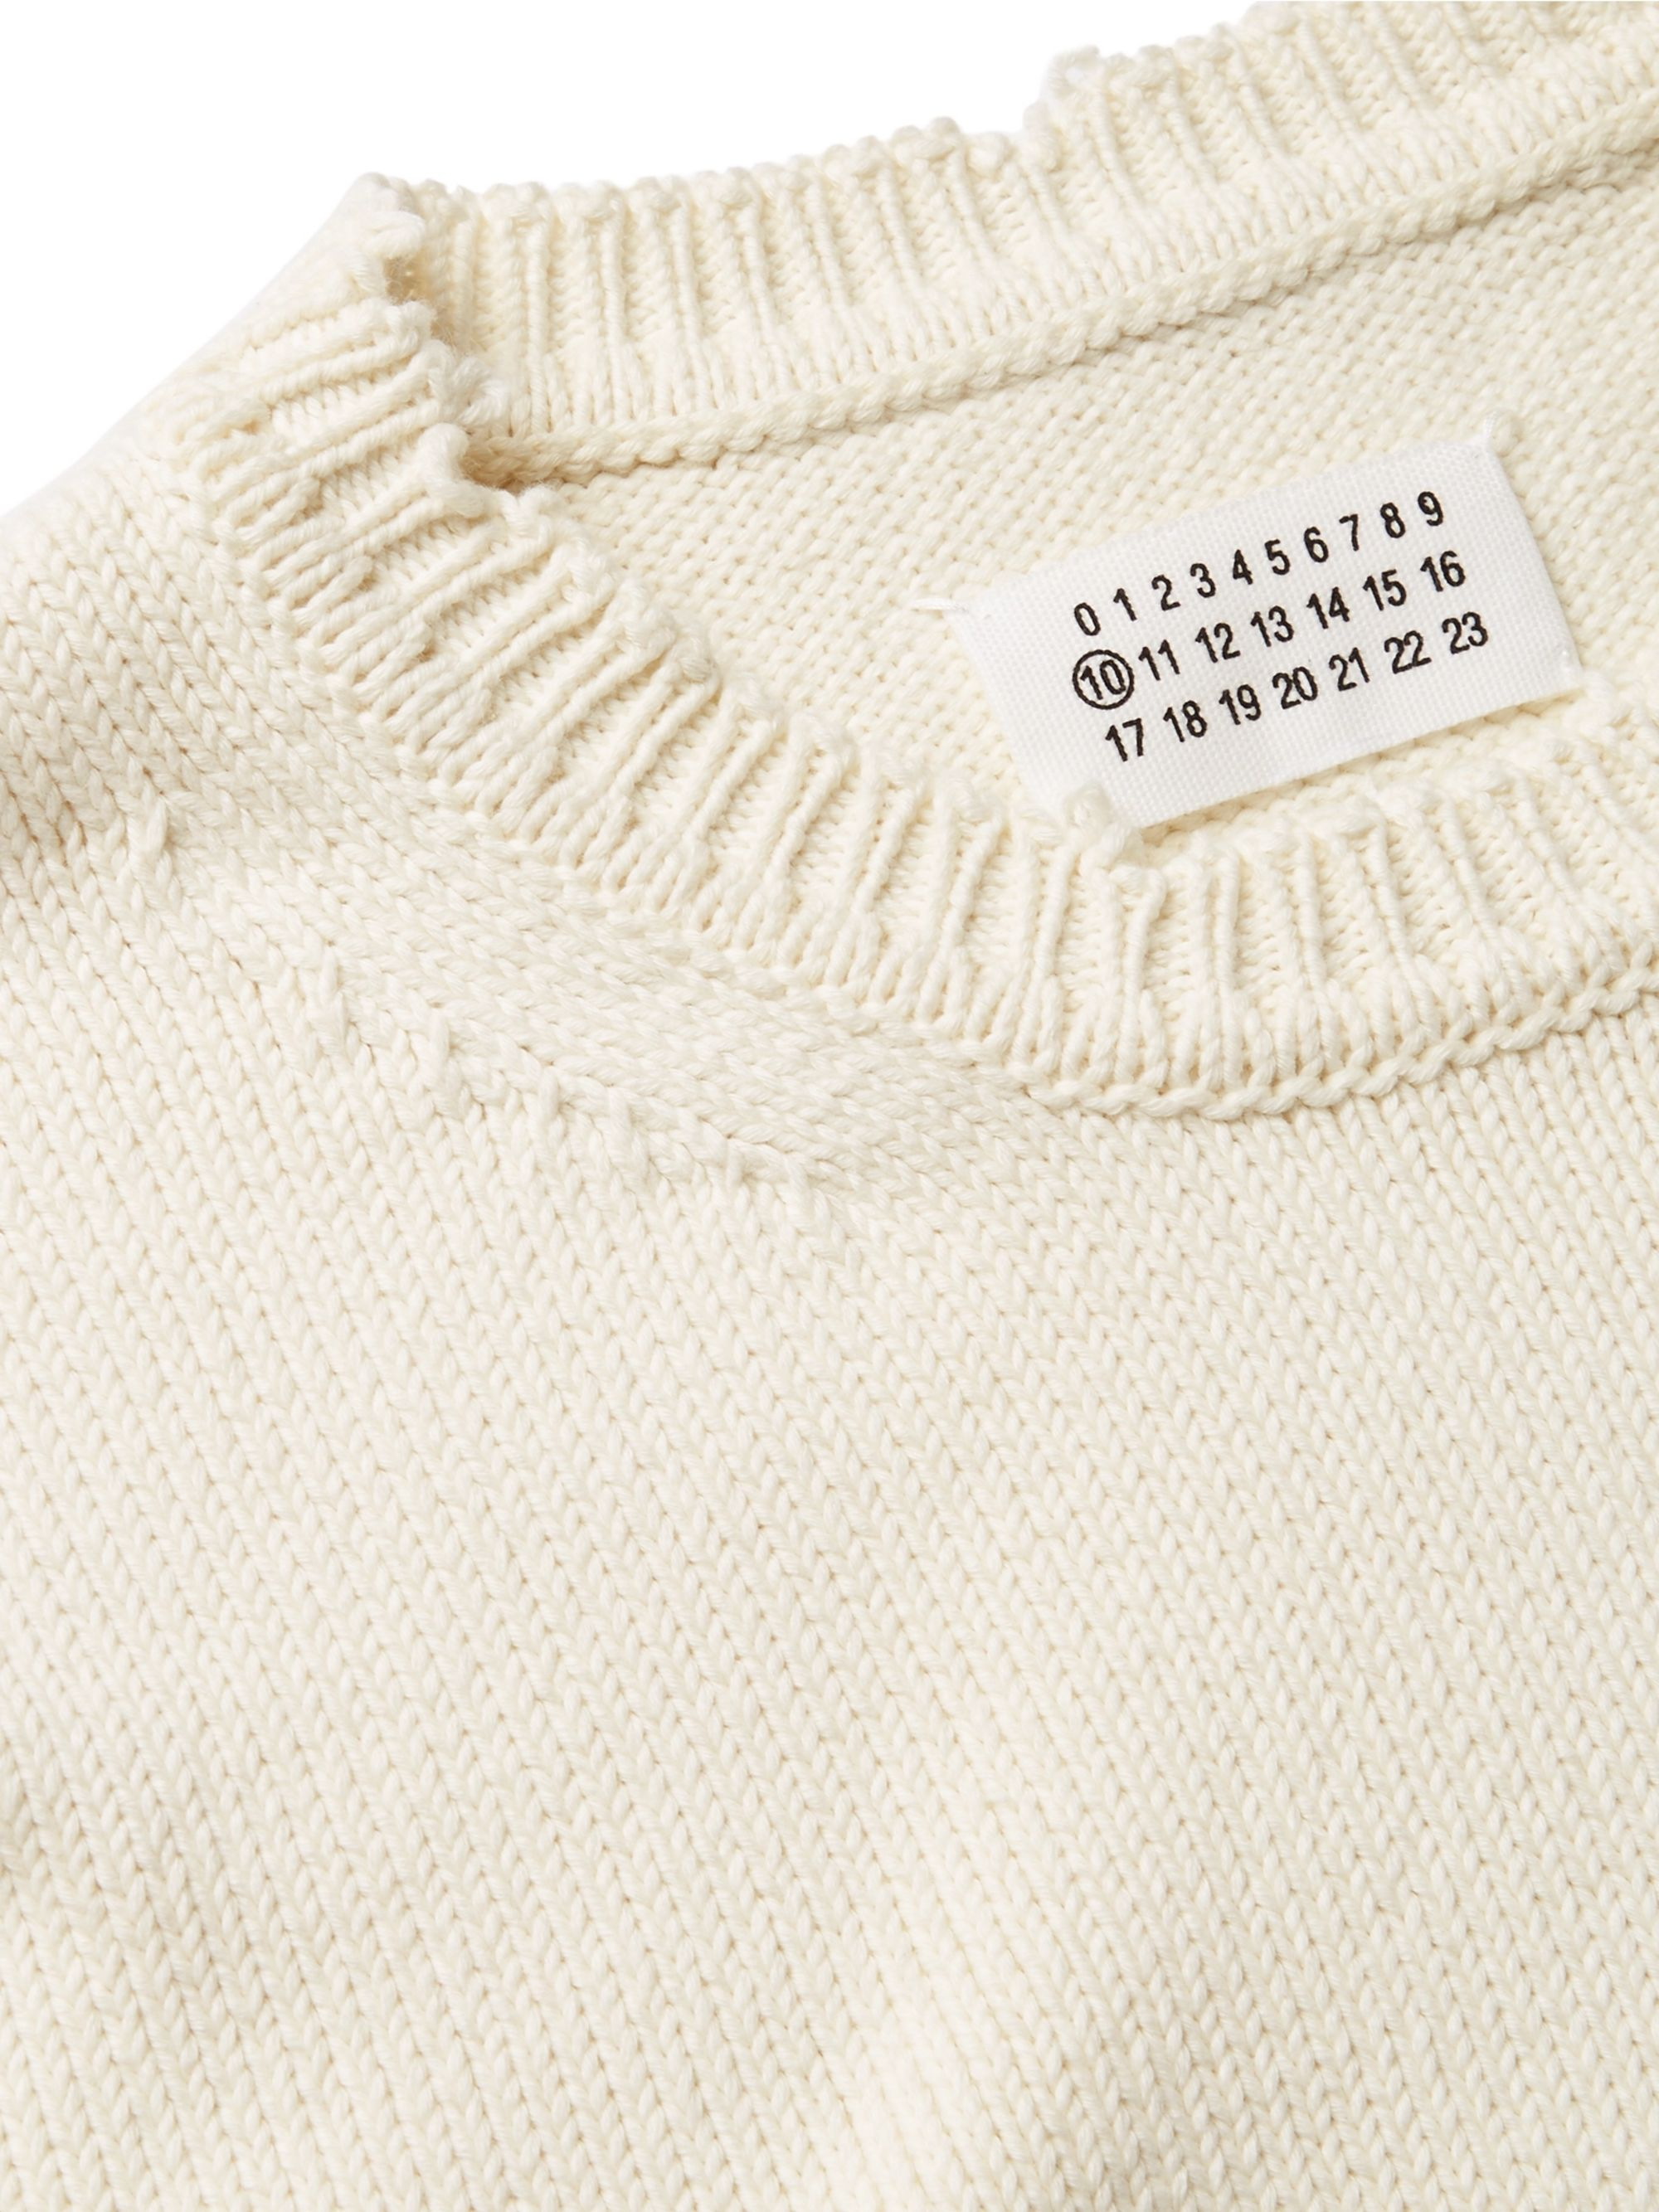 Maison Margiela Distressed Cotton Sweater